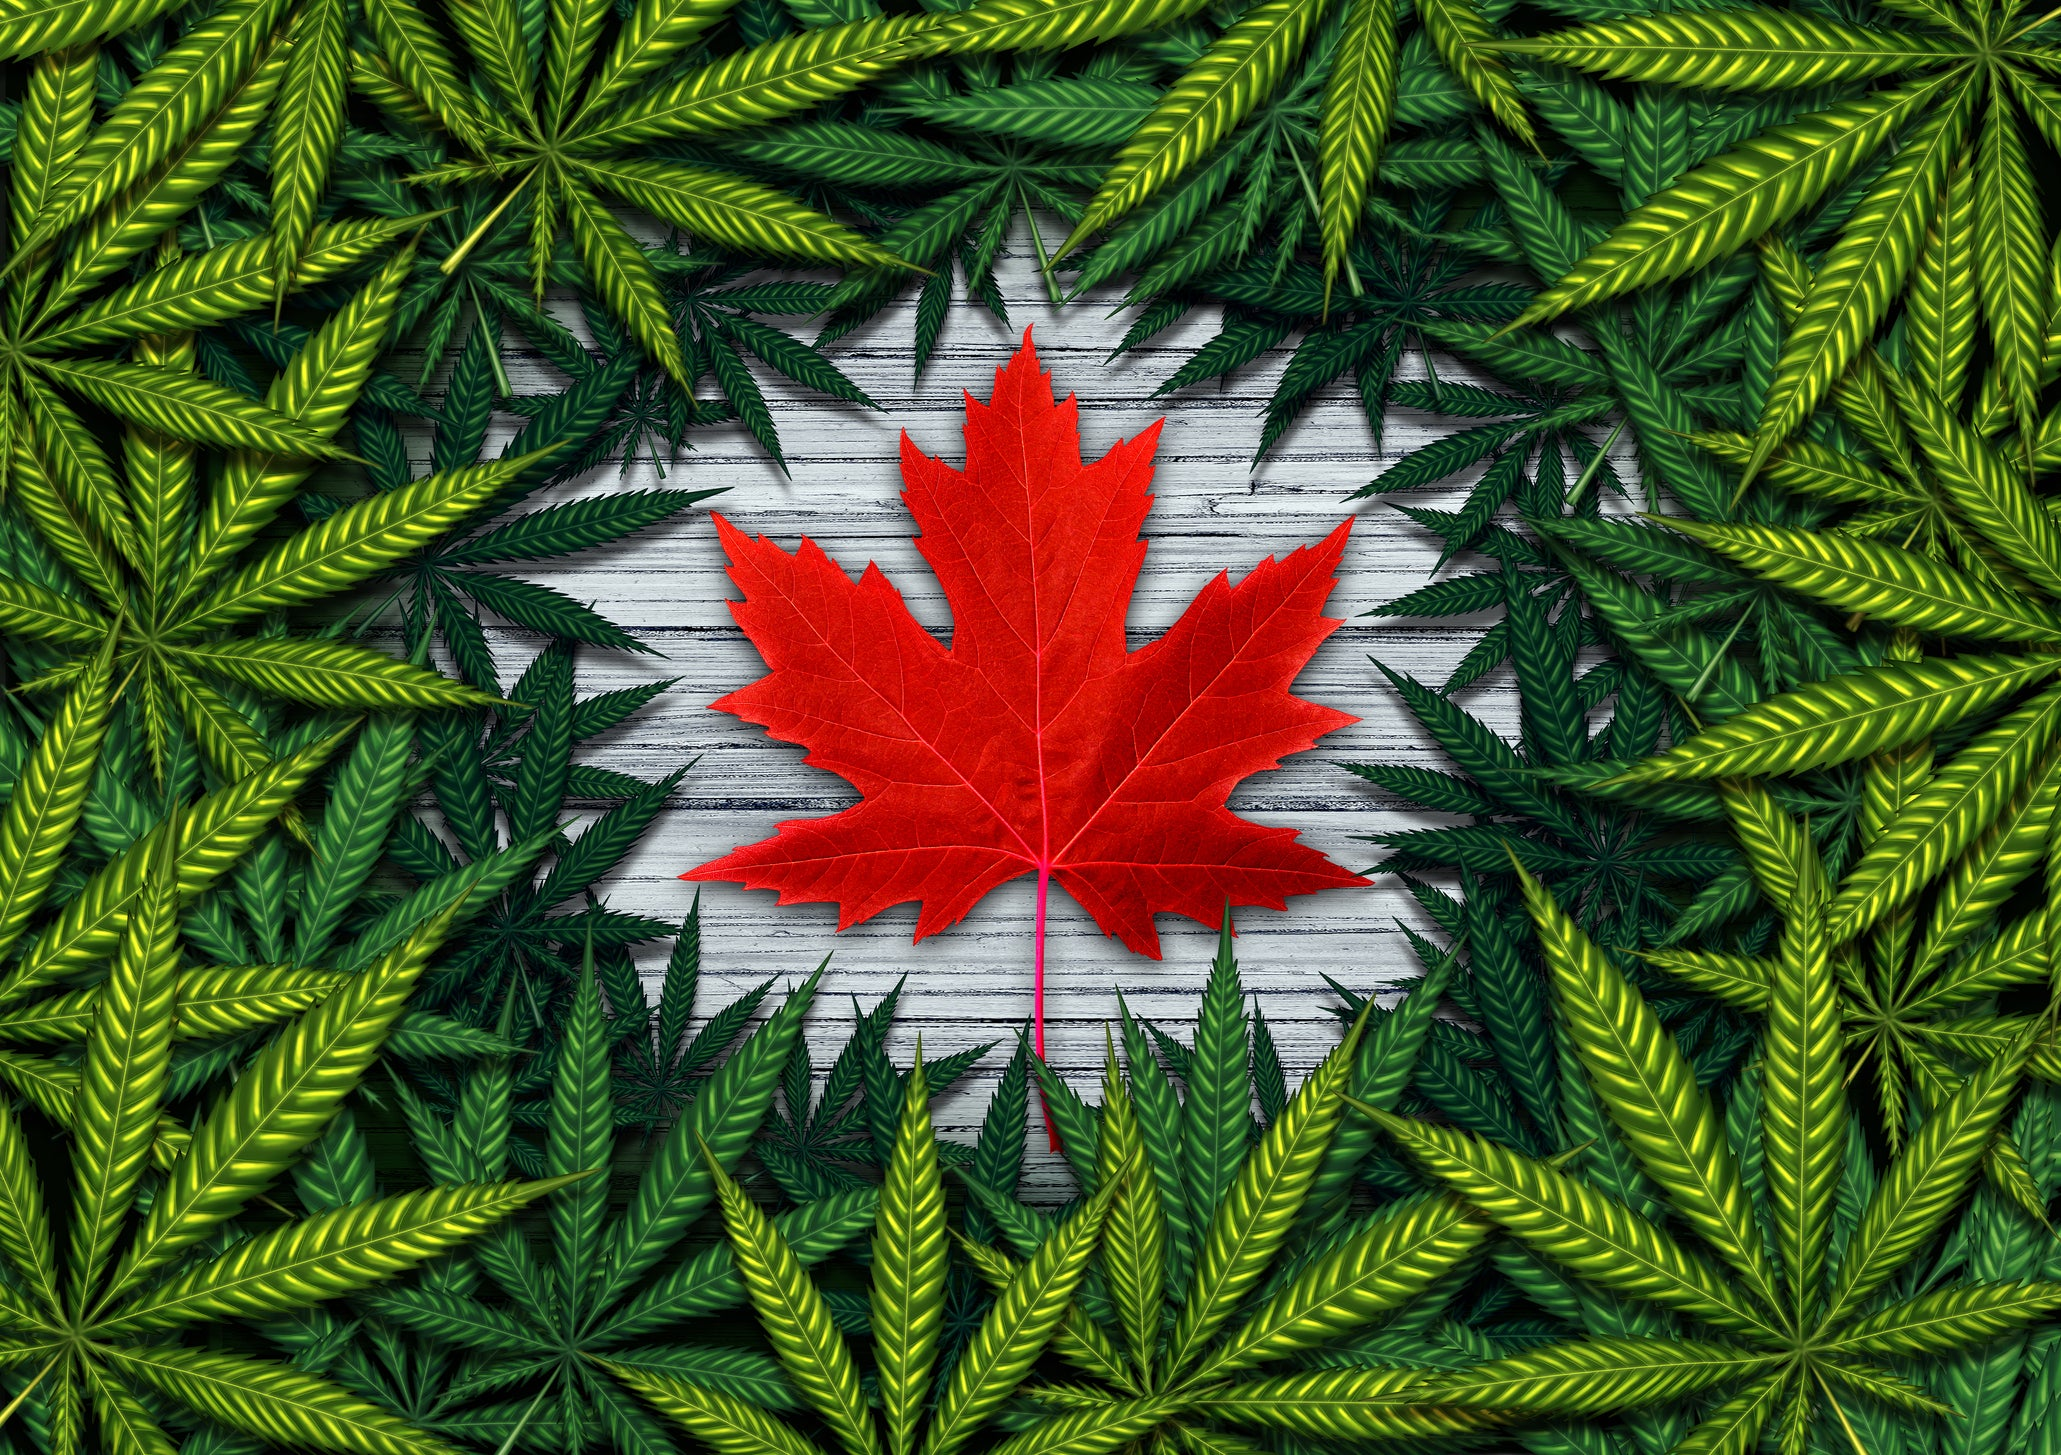 10 Days Until Canada's Recreational Marijuana Market Opens -- These 3 Stocks Could Be the Biggest Winners